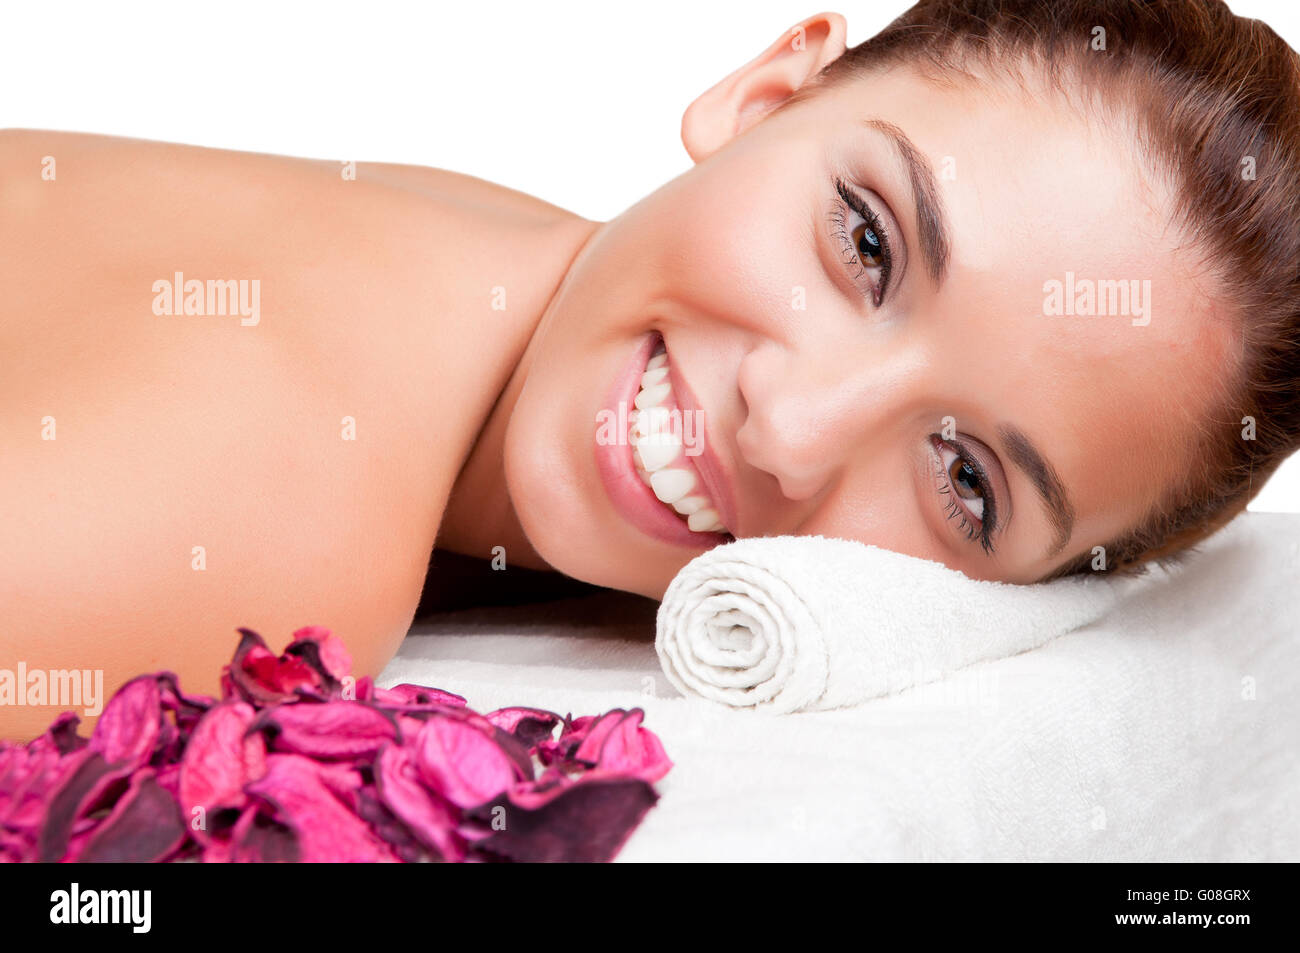 Woman in a Spa - Stock Image